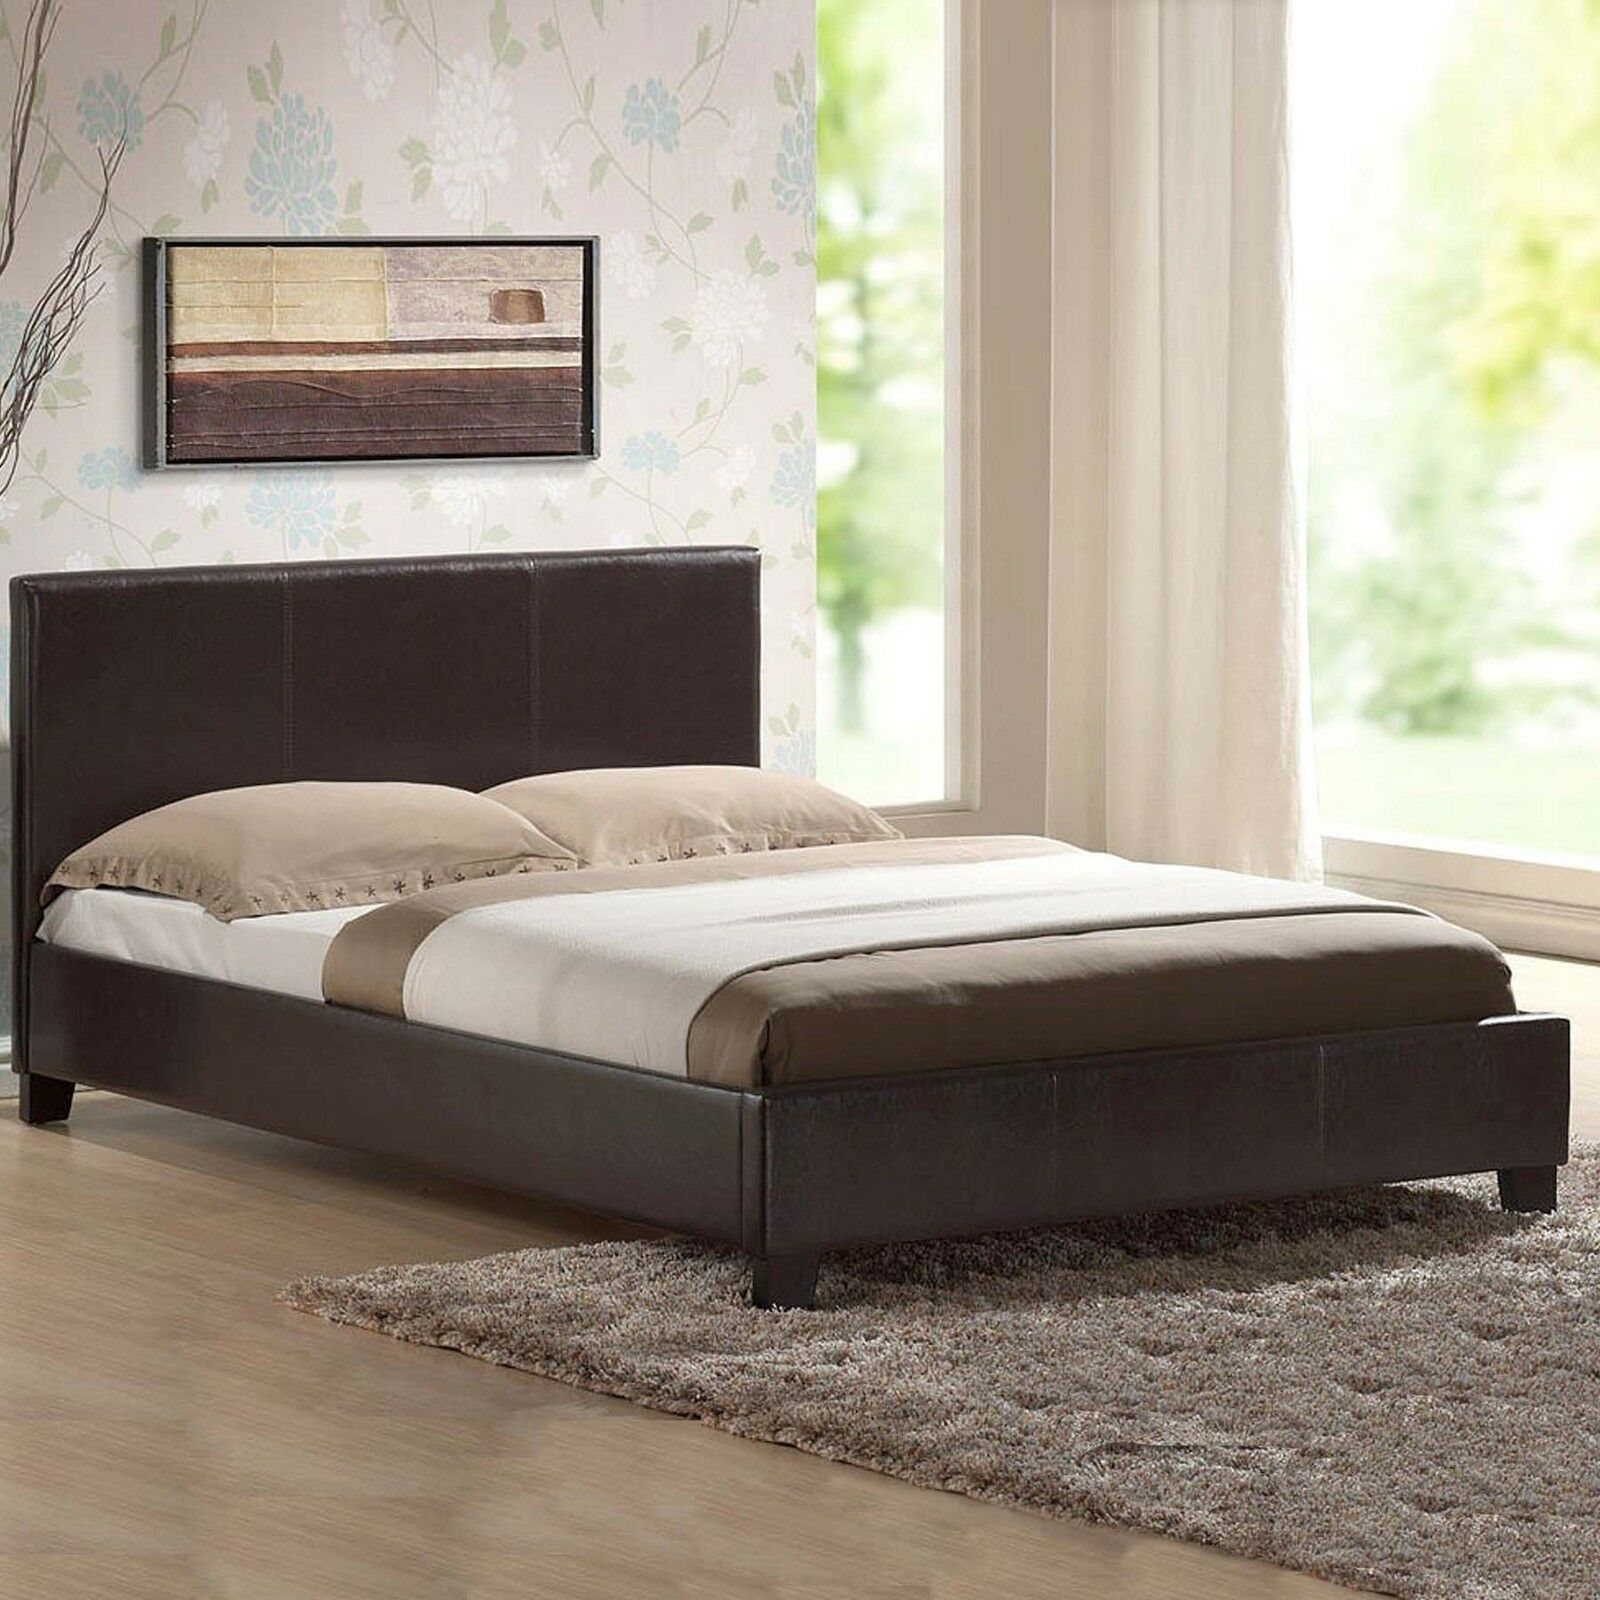 NEW BED IN A BOX-LEATHER BED BLACK-BROWN- With MEMORY FOAM-ORTHOPAEDIC  MATTRESS